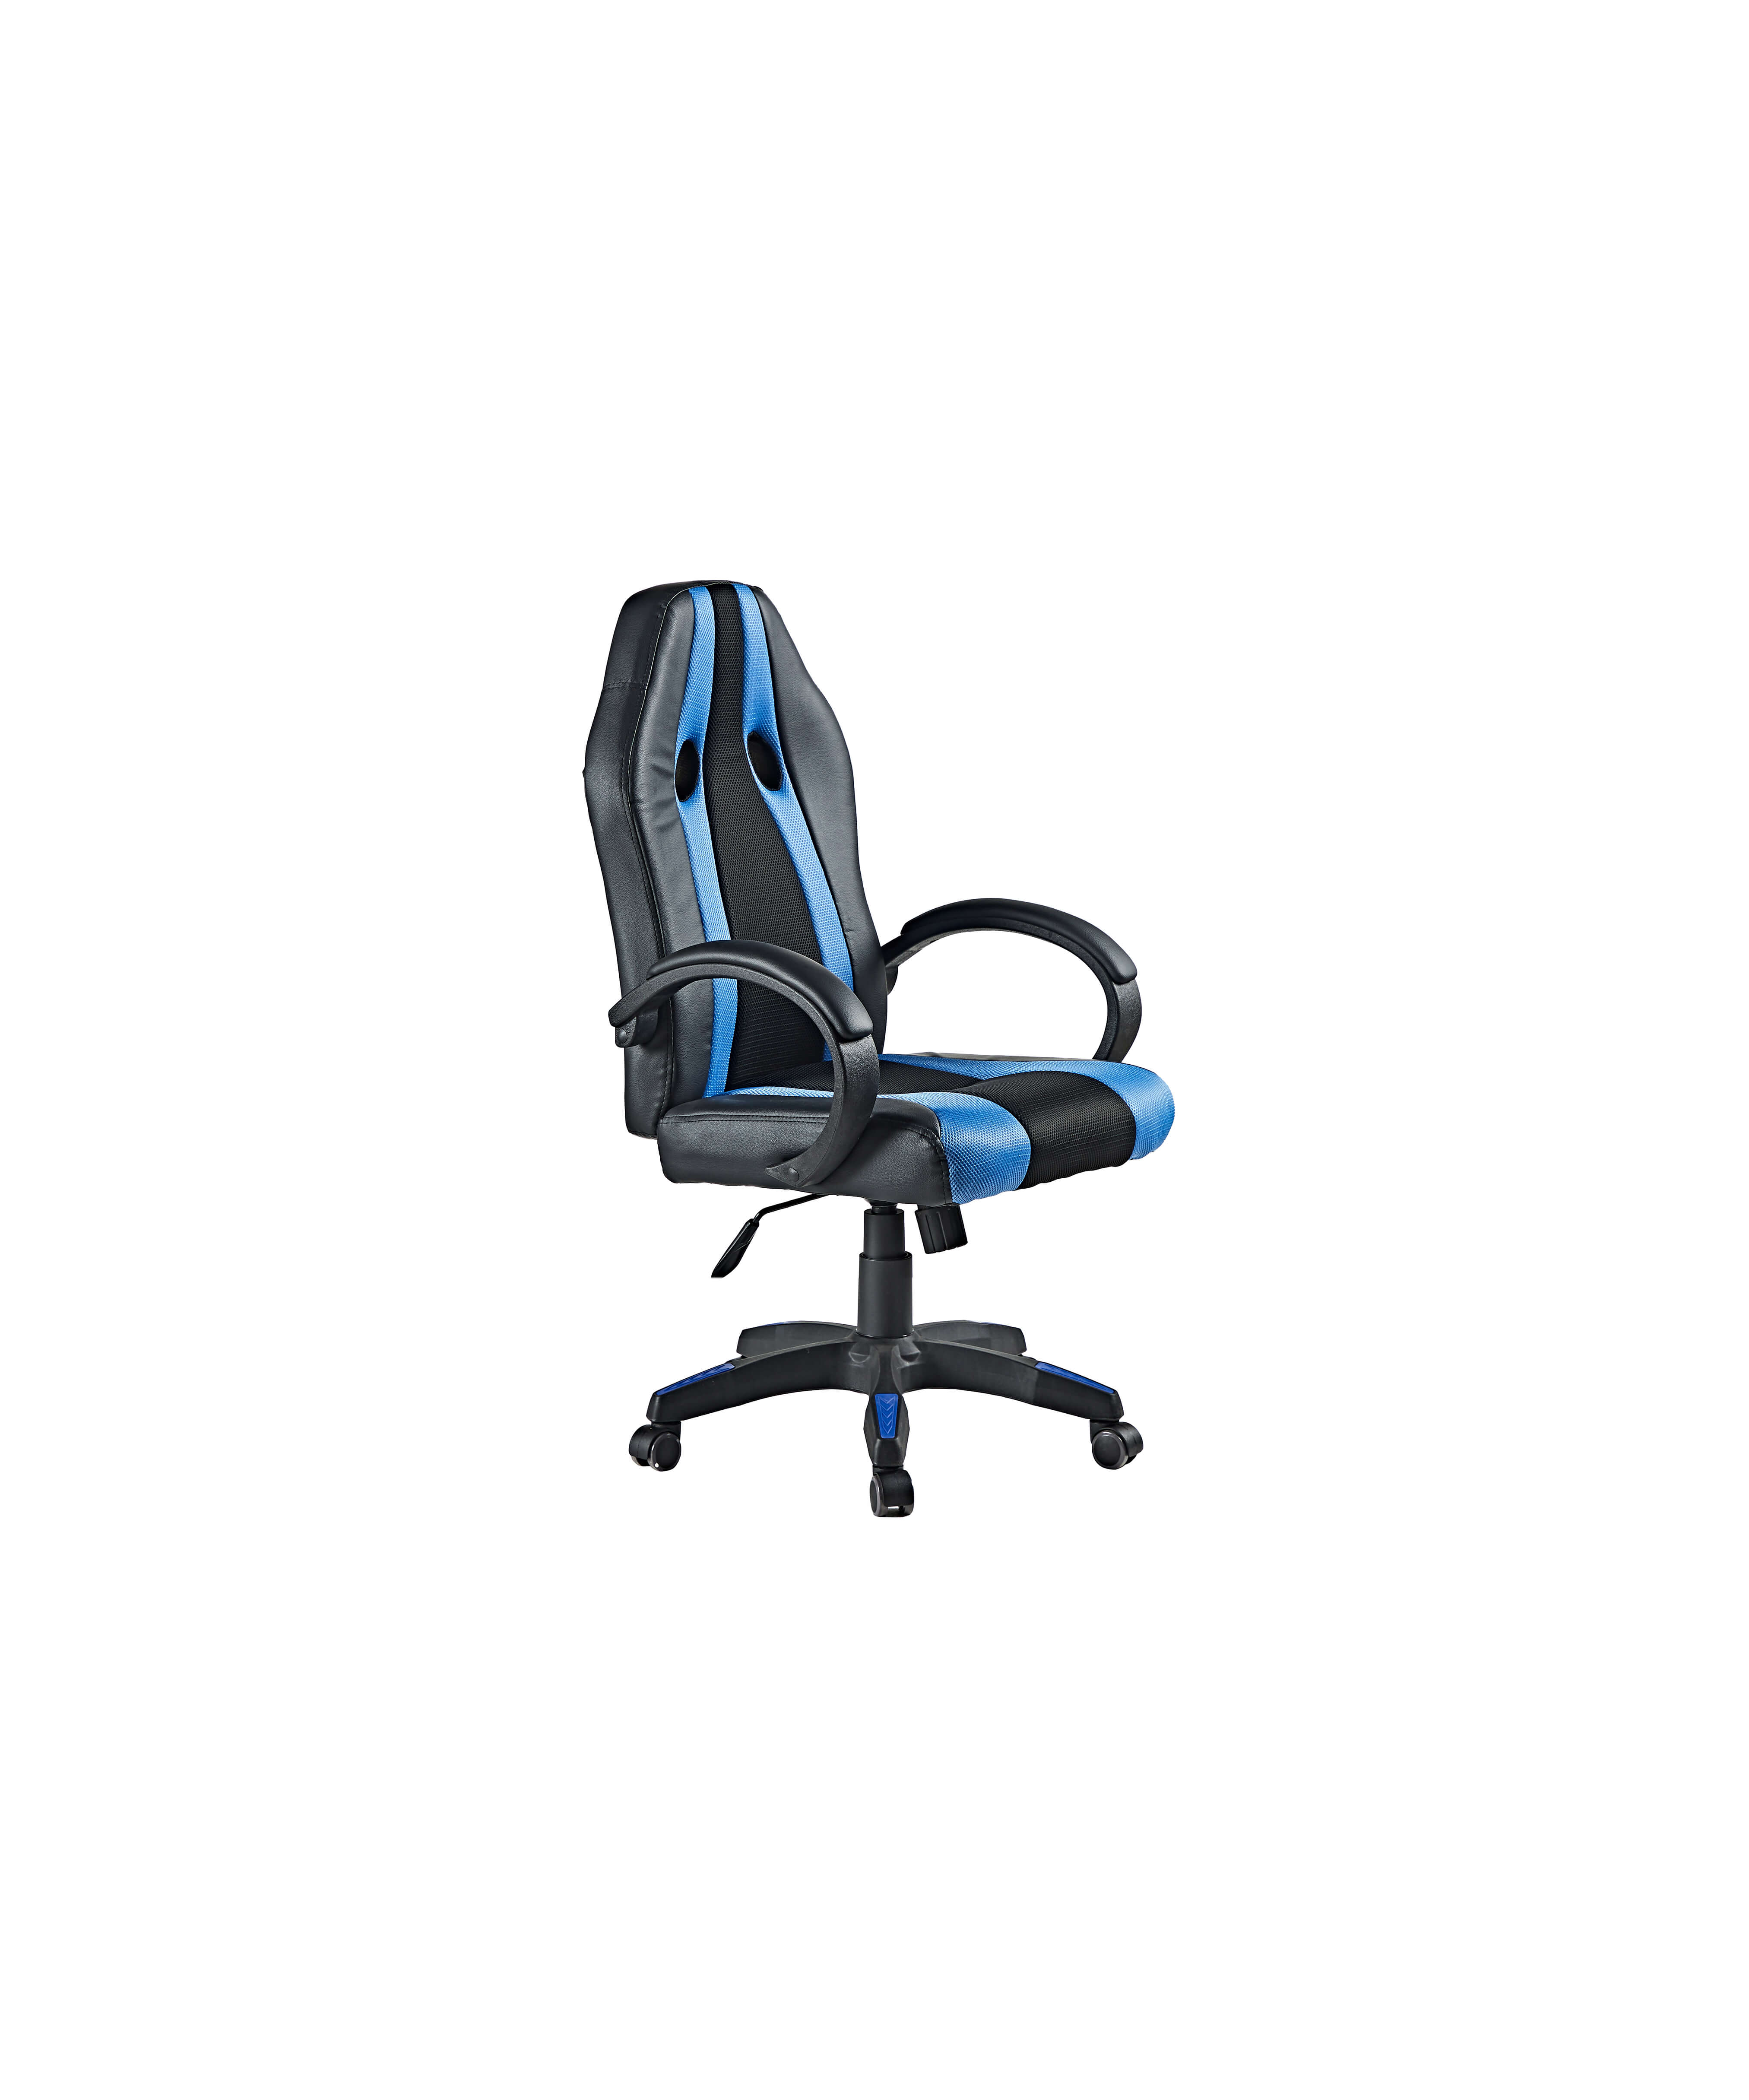 Hot sale cheap gaming chair high back executive manager chair for office furniture